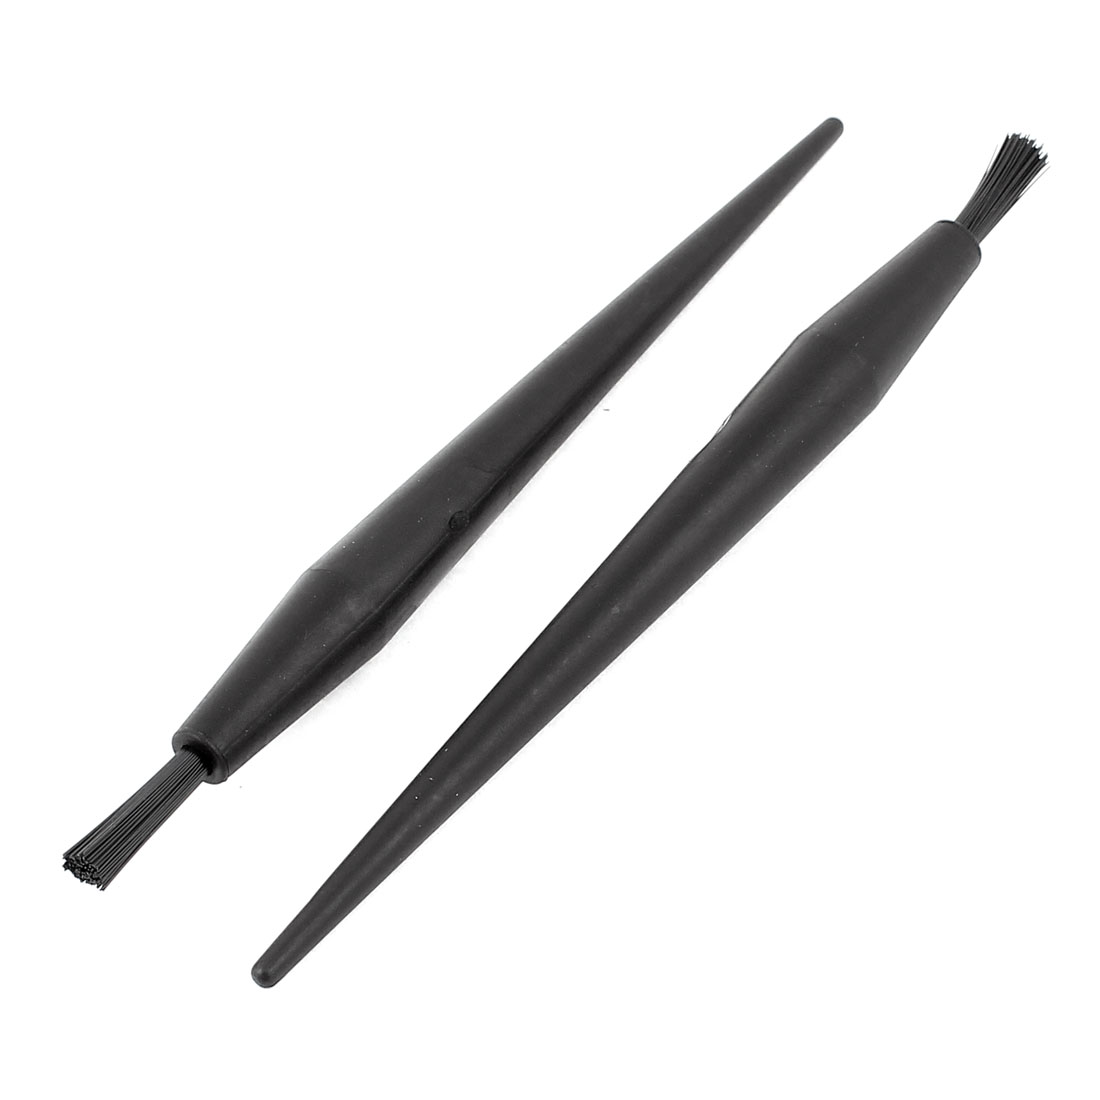 2 Pcs 18 x 4mm Round Handle Dust Cleaning Conductive ESD Anti Static Brush